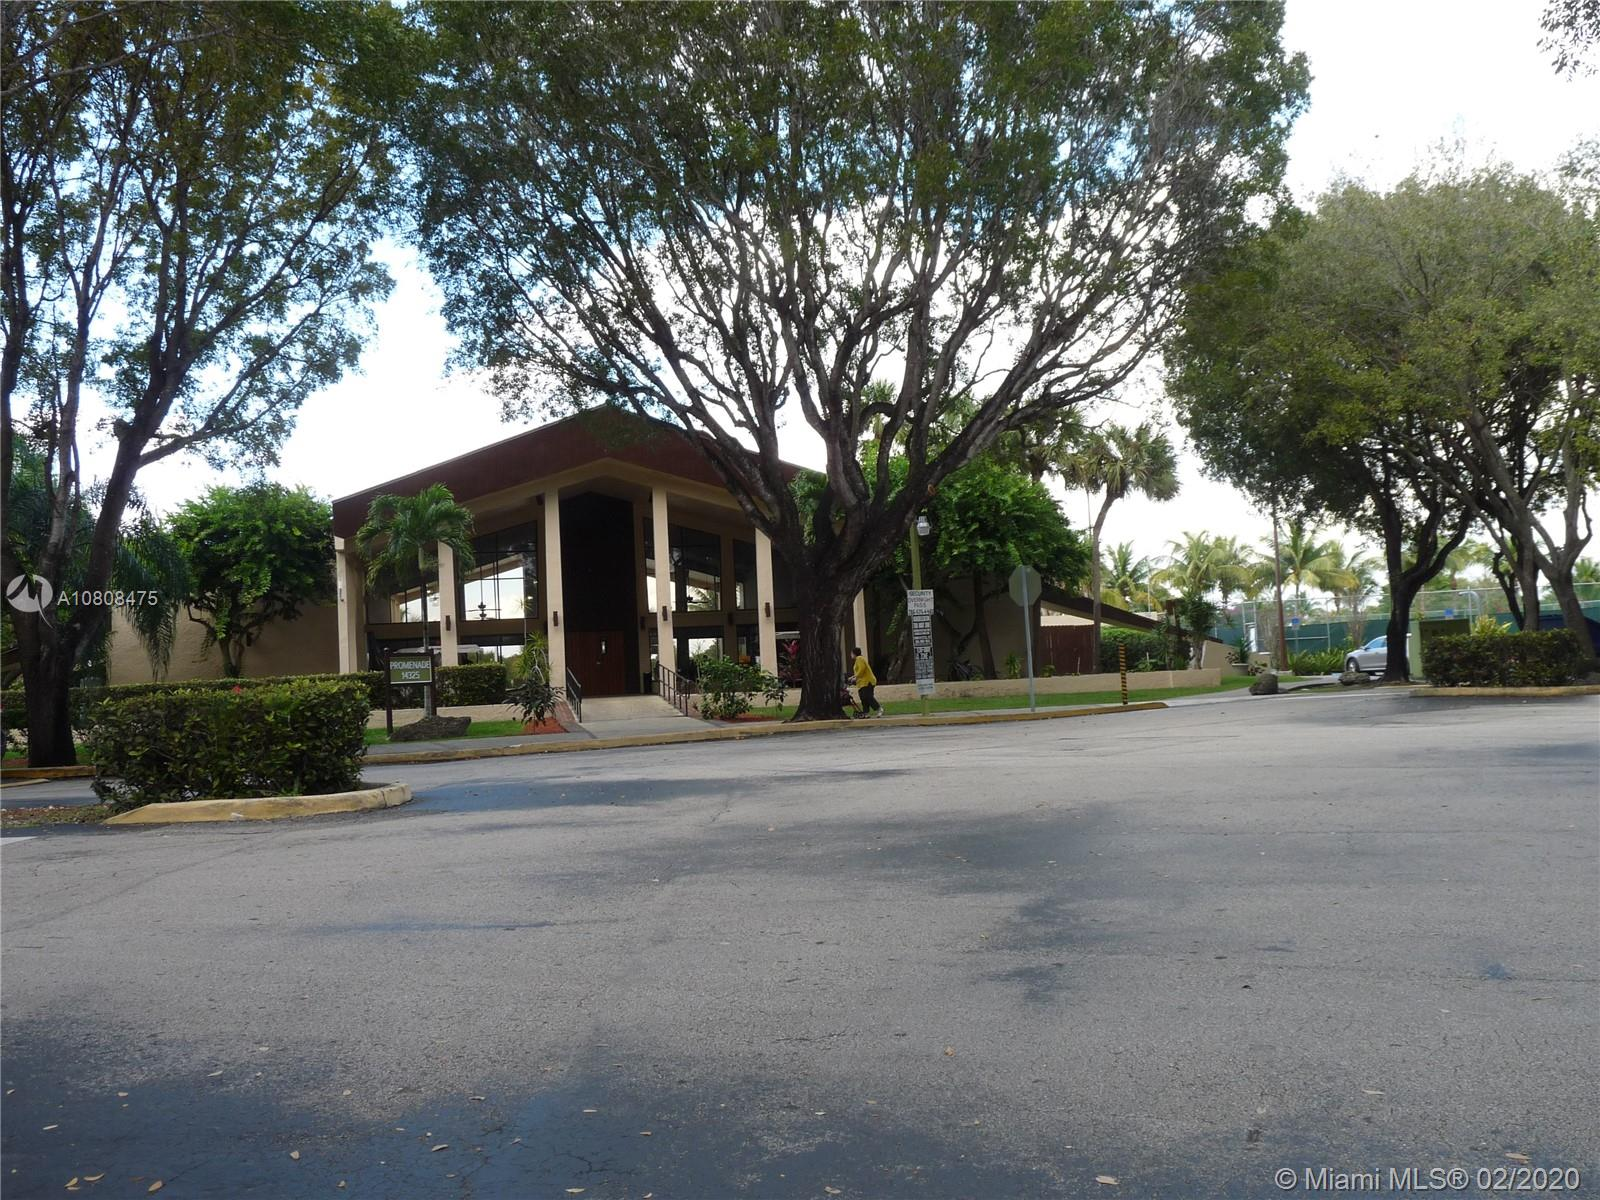 ONE OF THE BIGGEST UNIT 2/2 AT PROMENADE , CENTRALLY LOCATED , CLOSE TO RESTAURANTS, SCHOOLS, AND THE FL TURNPIKE. NICE SIZE ROOMS, EXCELLENT FLOOR PLAN. 2 DOORS ENTRANCE IS A PLUS. TENANTS OCCUPIED UNTIL MARCH, GREAT FOR INVESTORS. BY APPOINTMENTS ONLY..PROMENADE COMMUNITY HAS 2 POOLS, TENNIS COURTS, LAKE VIEW AND SECURITY PATROL. ASSOCIATION MEETS ONCE A MONTH , HOWEVER; RUSH APPLICATION IS AVAILABLE UPON REQUESTED. NO PETS AS PER CONDO DOC'S.